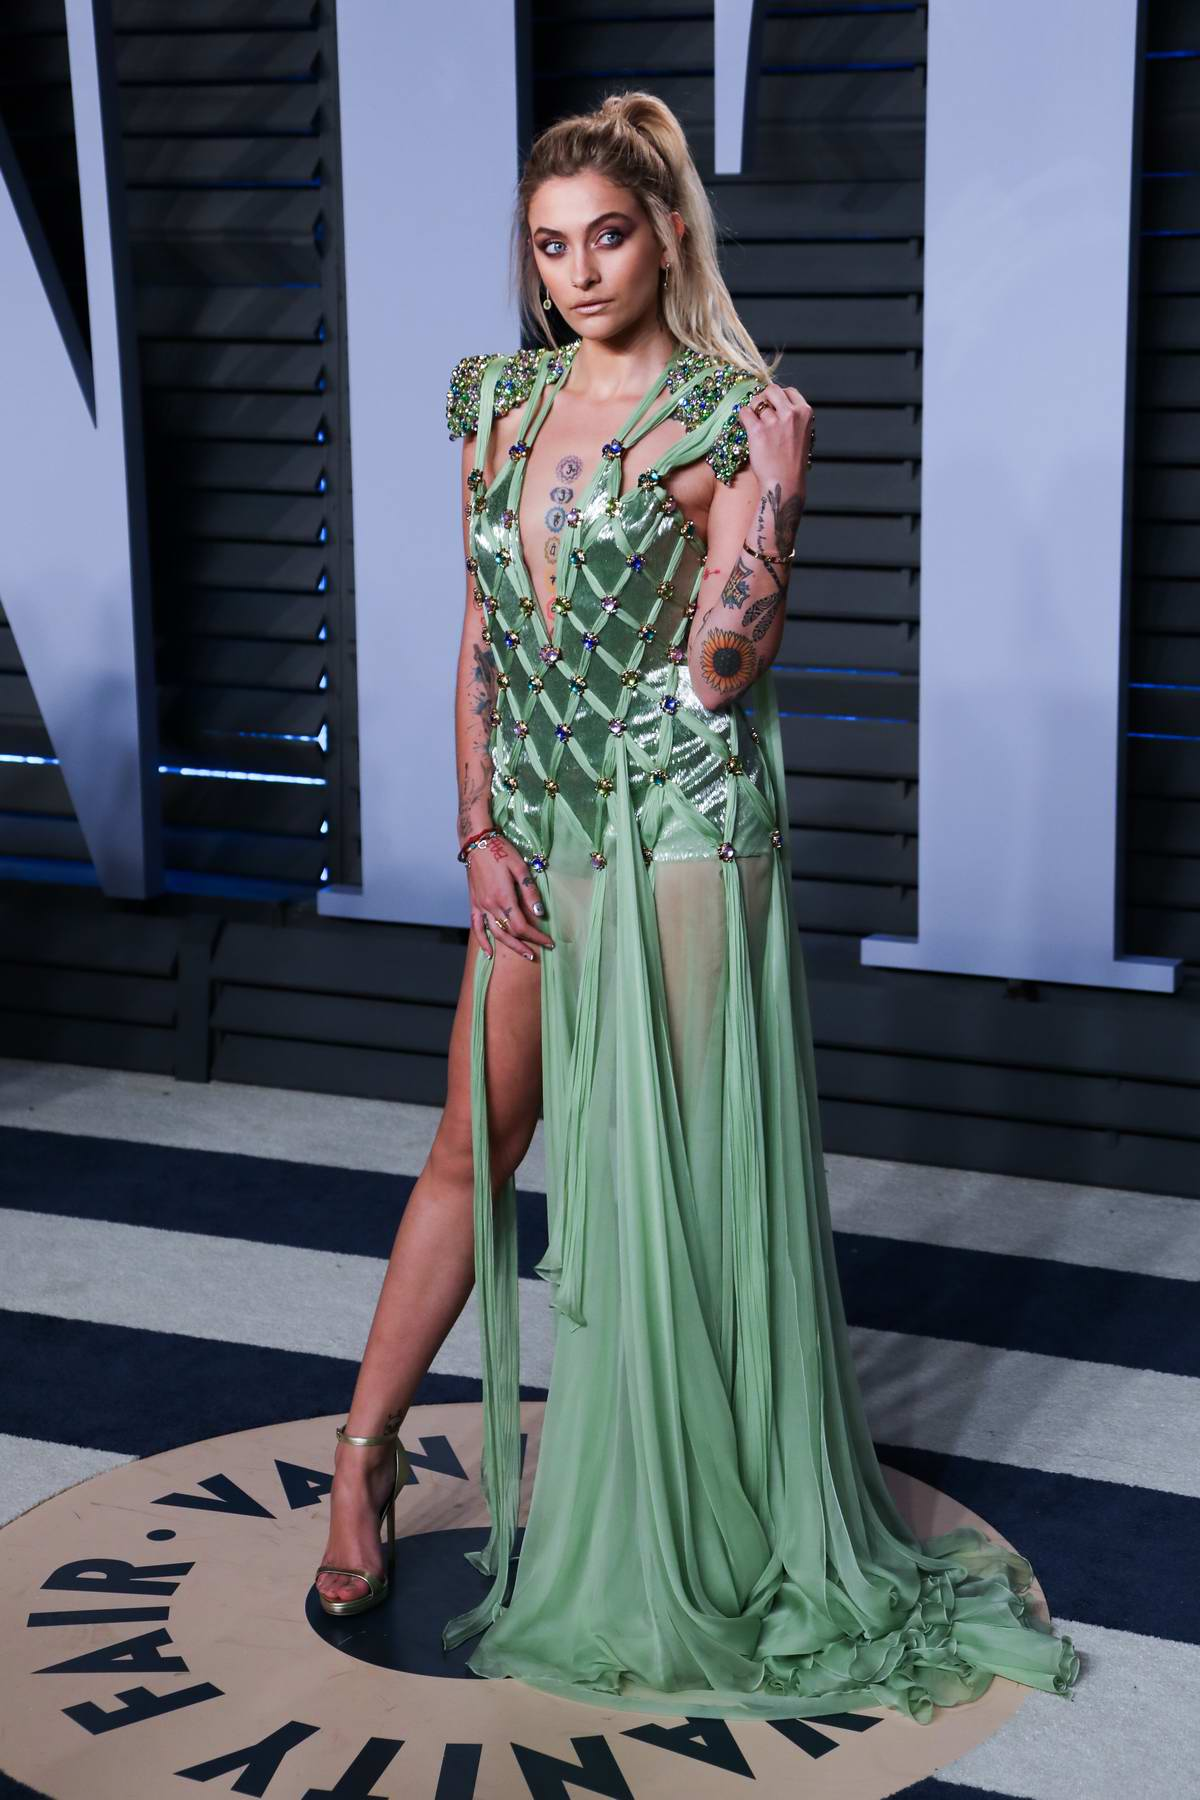 Paris Jackson Attends 2018 Vanity Fair Oscar Party At The